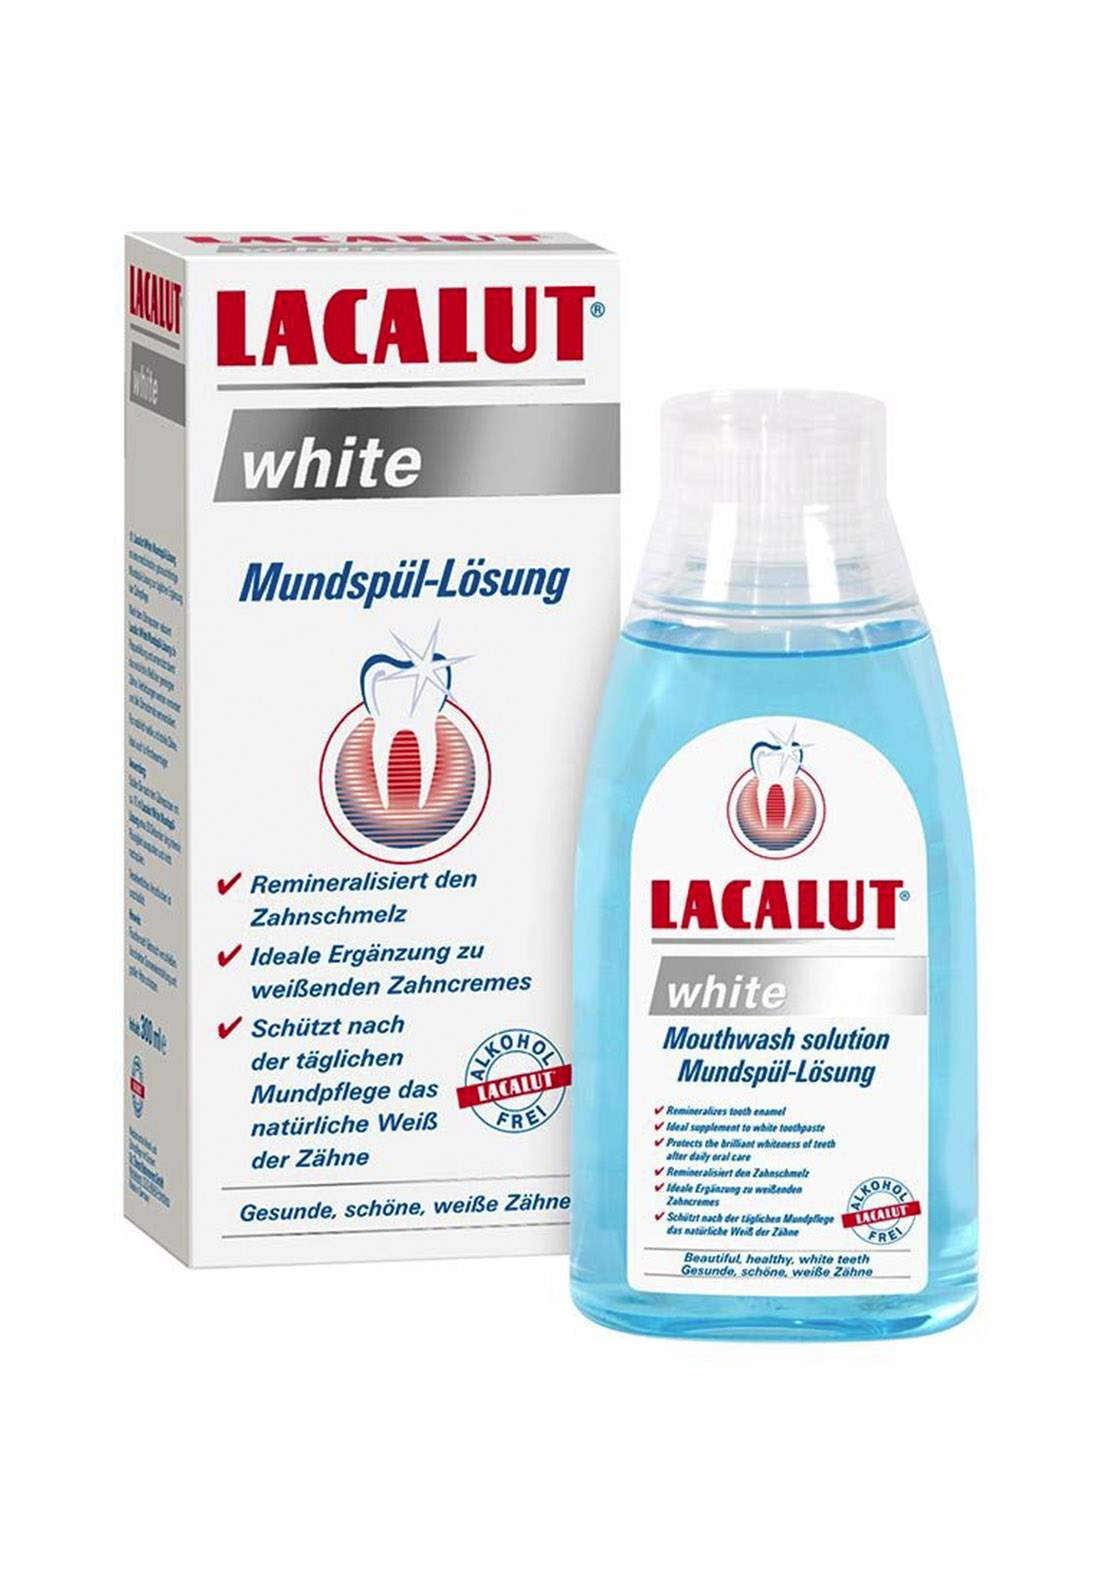 Lacalut White Mouthwash 300ml Crushed غسول فم